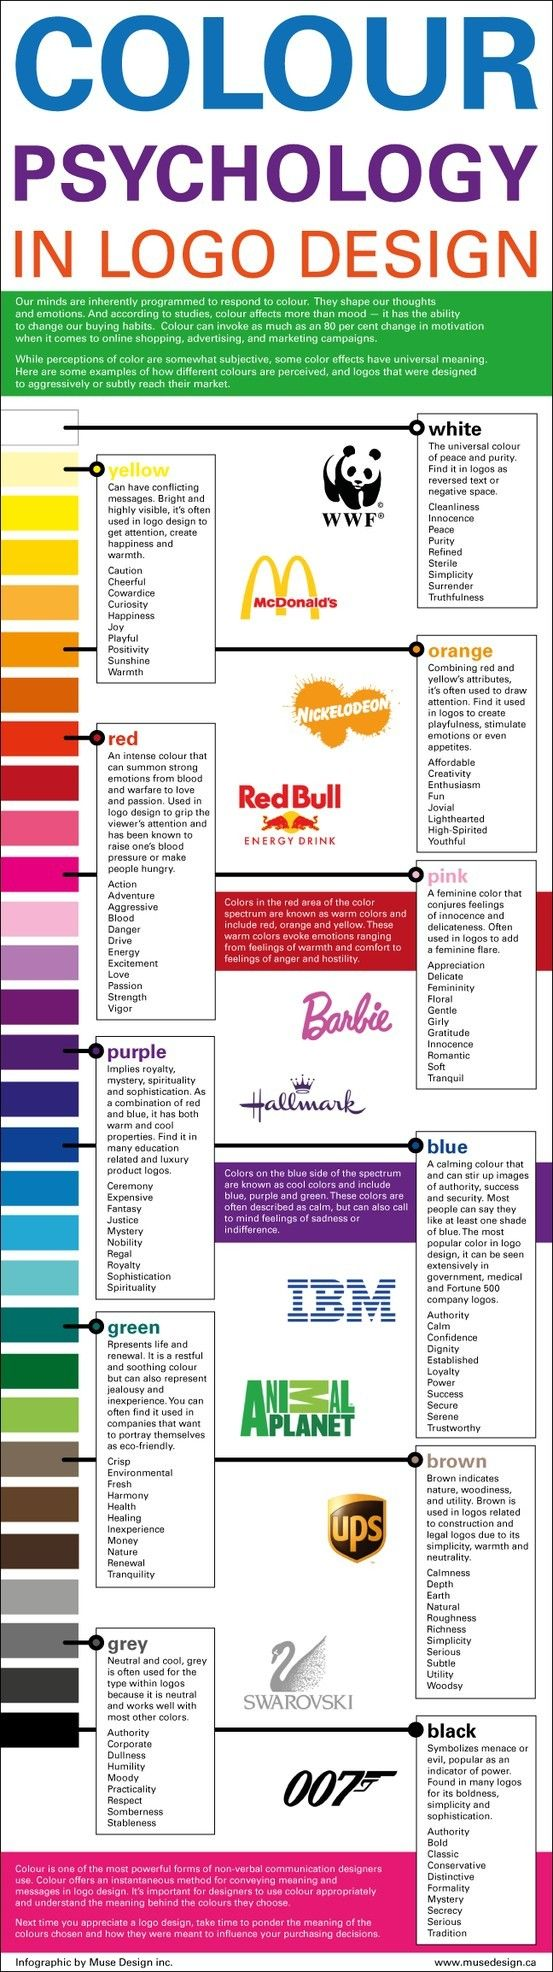 Lessons In Cool Color Psychology From Power Logo Designs